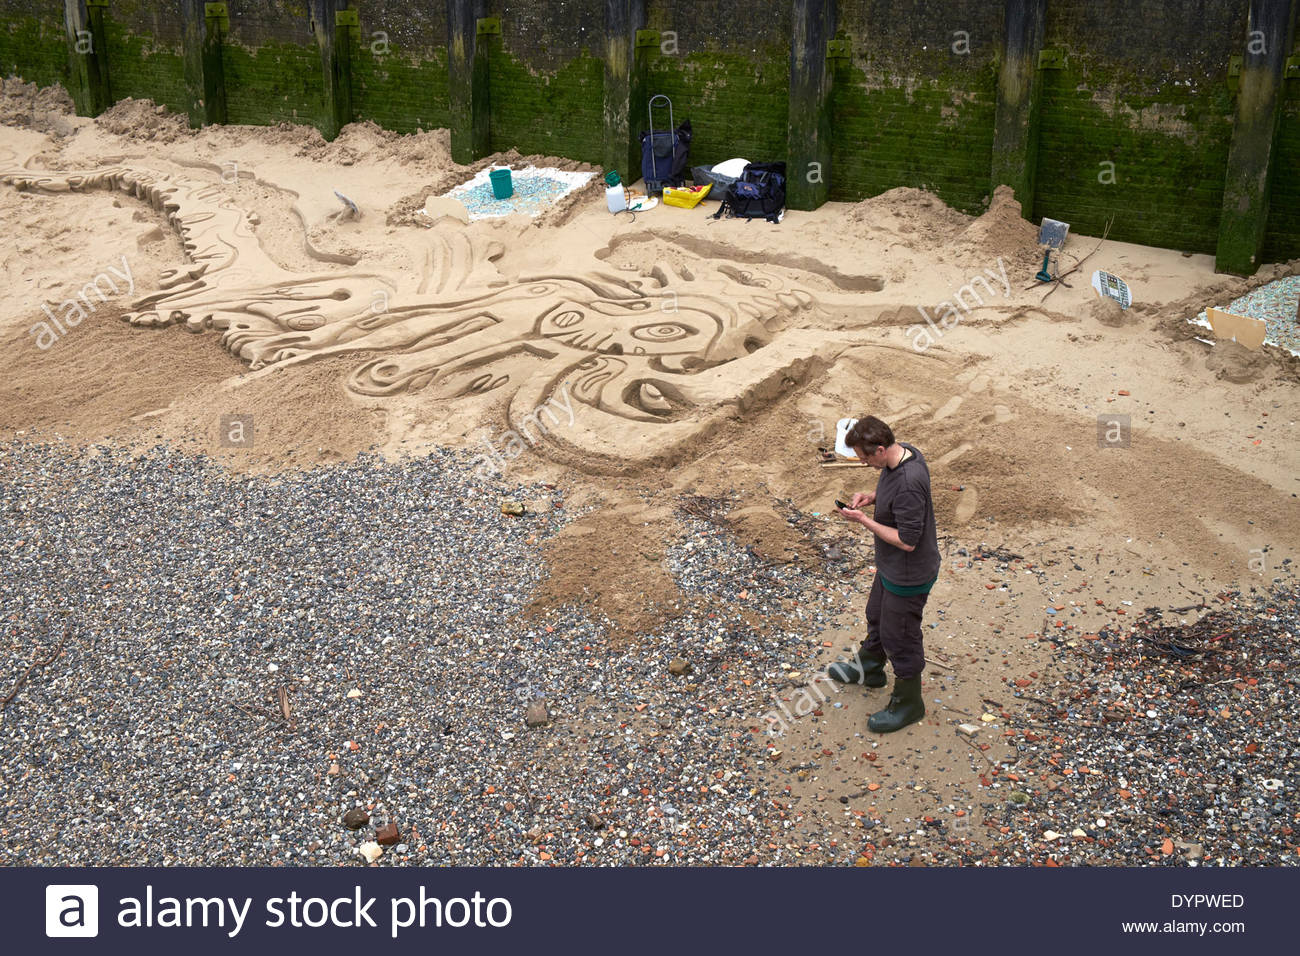 Sand Sculptor, Thames foreshore, South Bank, London - Stock Image